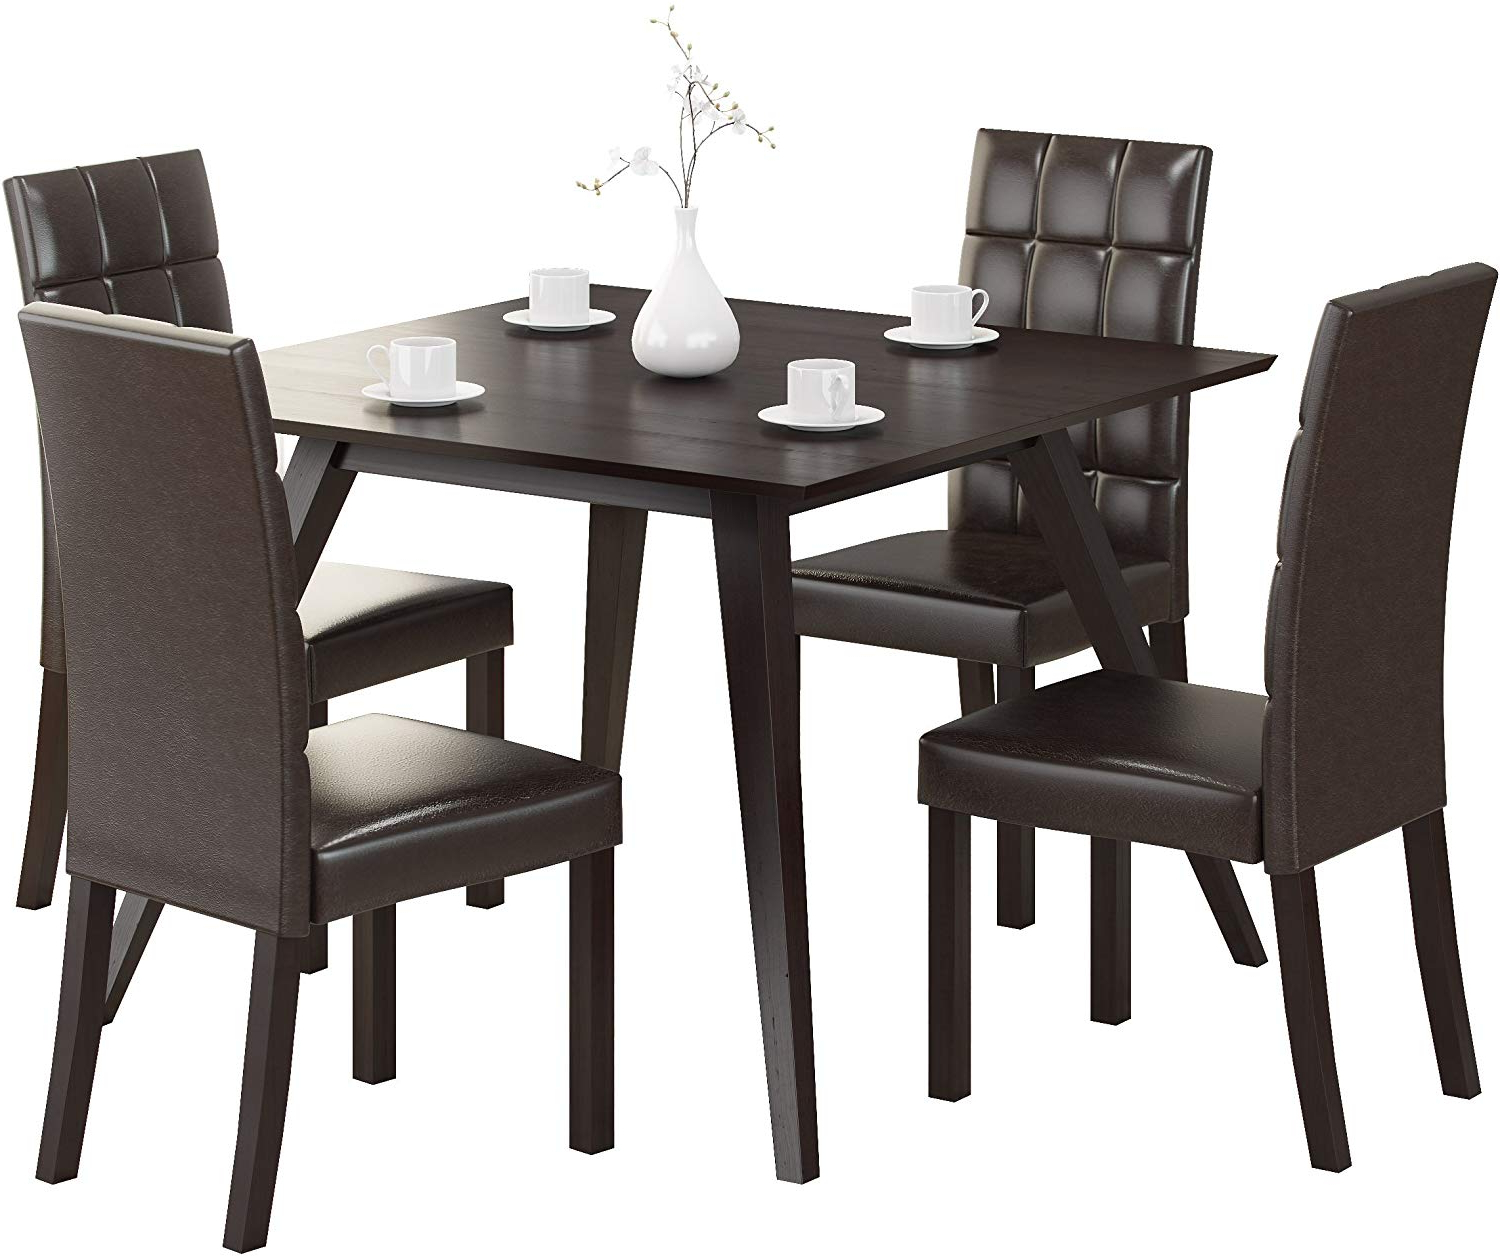 Most Recent Atwood Transitional Rectangular Dining Tables With Regard To Corliving Atwood Dining Set, Dark Brown (View 18 of 30)